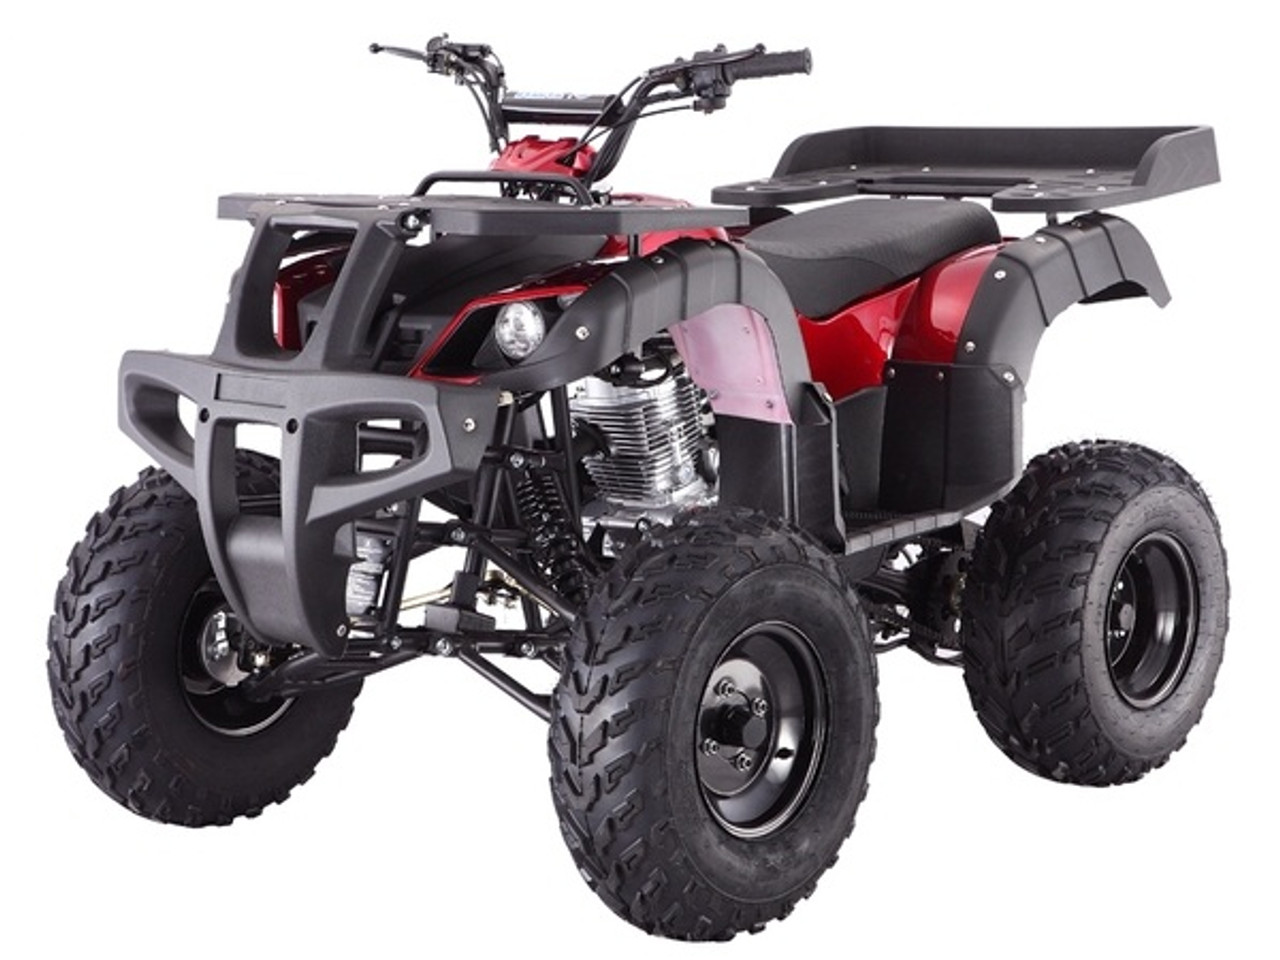 Taotao RHINO250 200CC, Air Cooled, 4-Stroke, 1-Cylinder, Manual Transmission - Fully Assembled and Tested